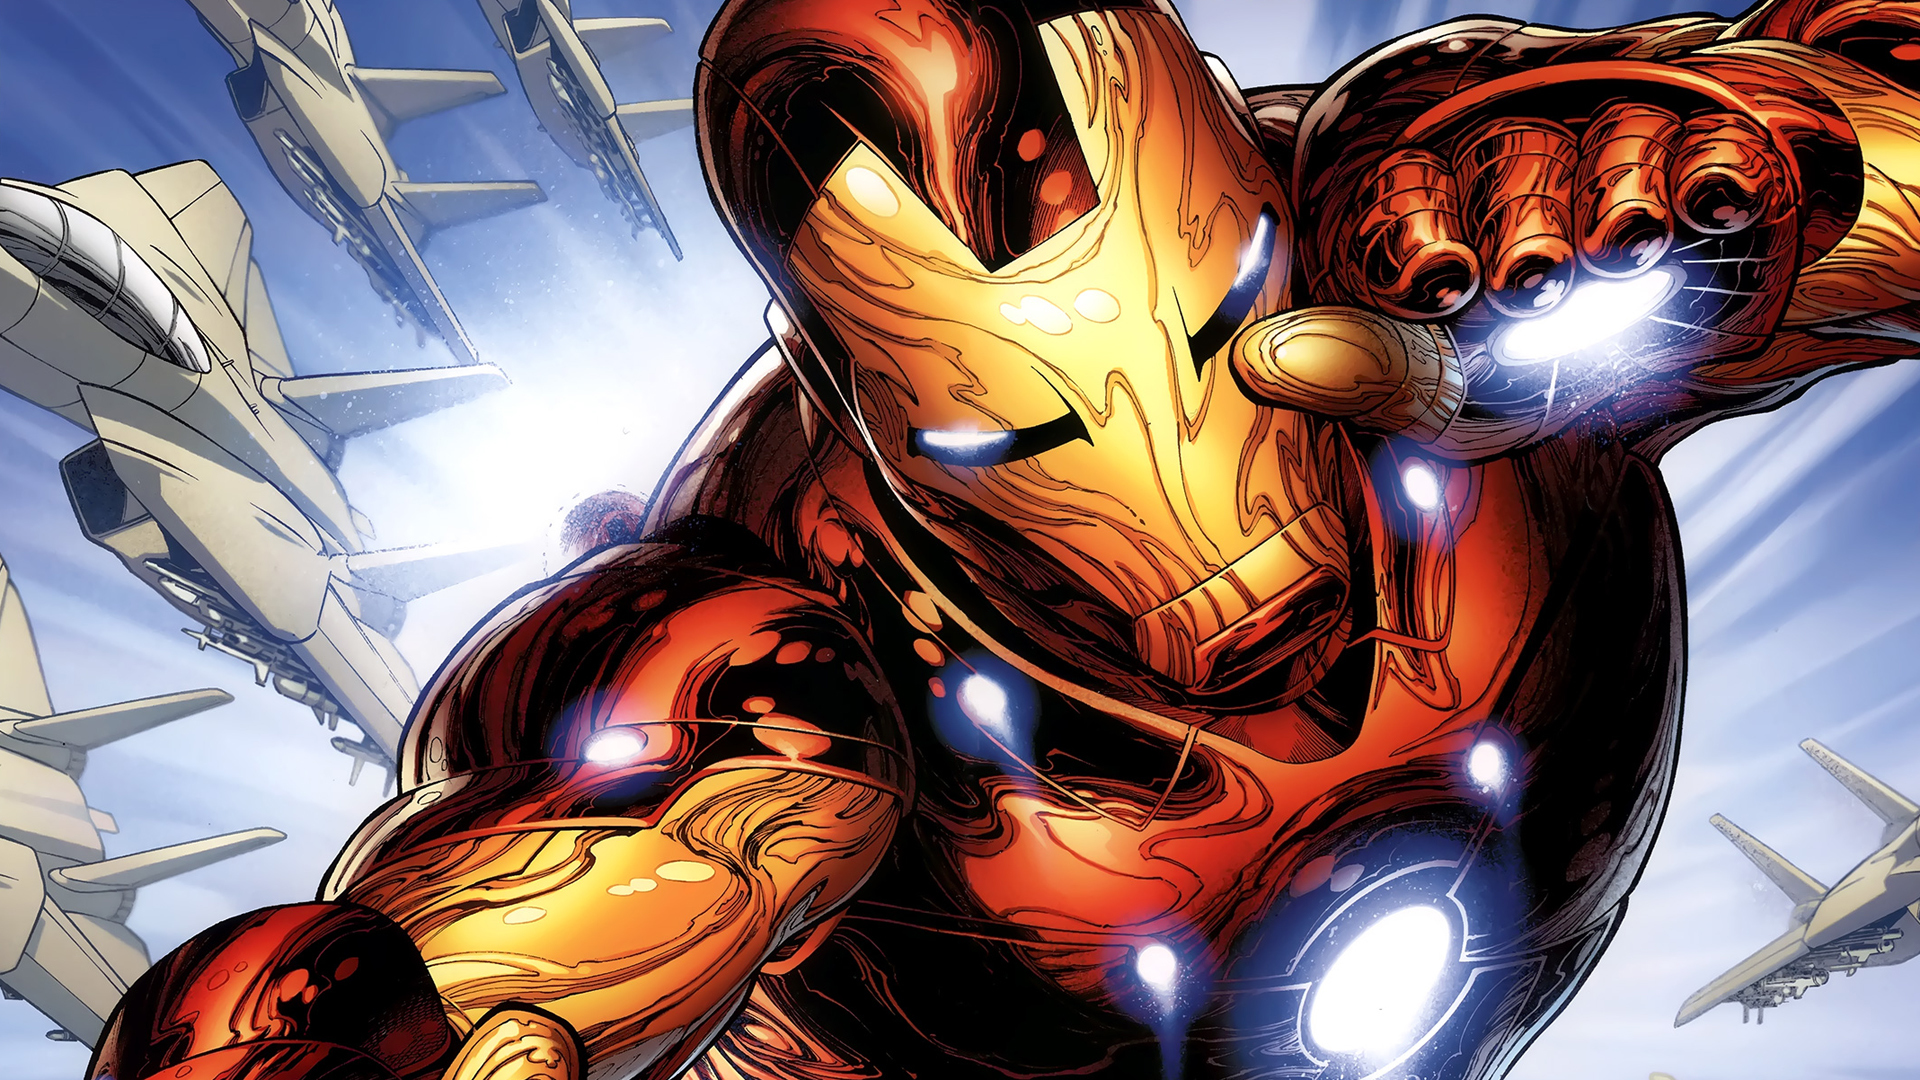 5. Cap always stands for what he believes in. And Iron Man has gone against his beliefs many times. Like supporting the registration act in the civil war and destroying other universes to save his own. They fought, but in the end, it seems Steve Rogers lets Iron Man slide away easily.